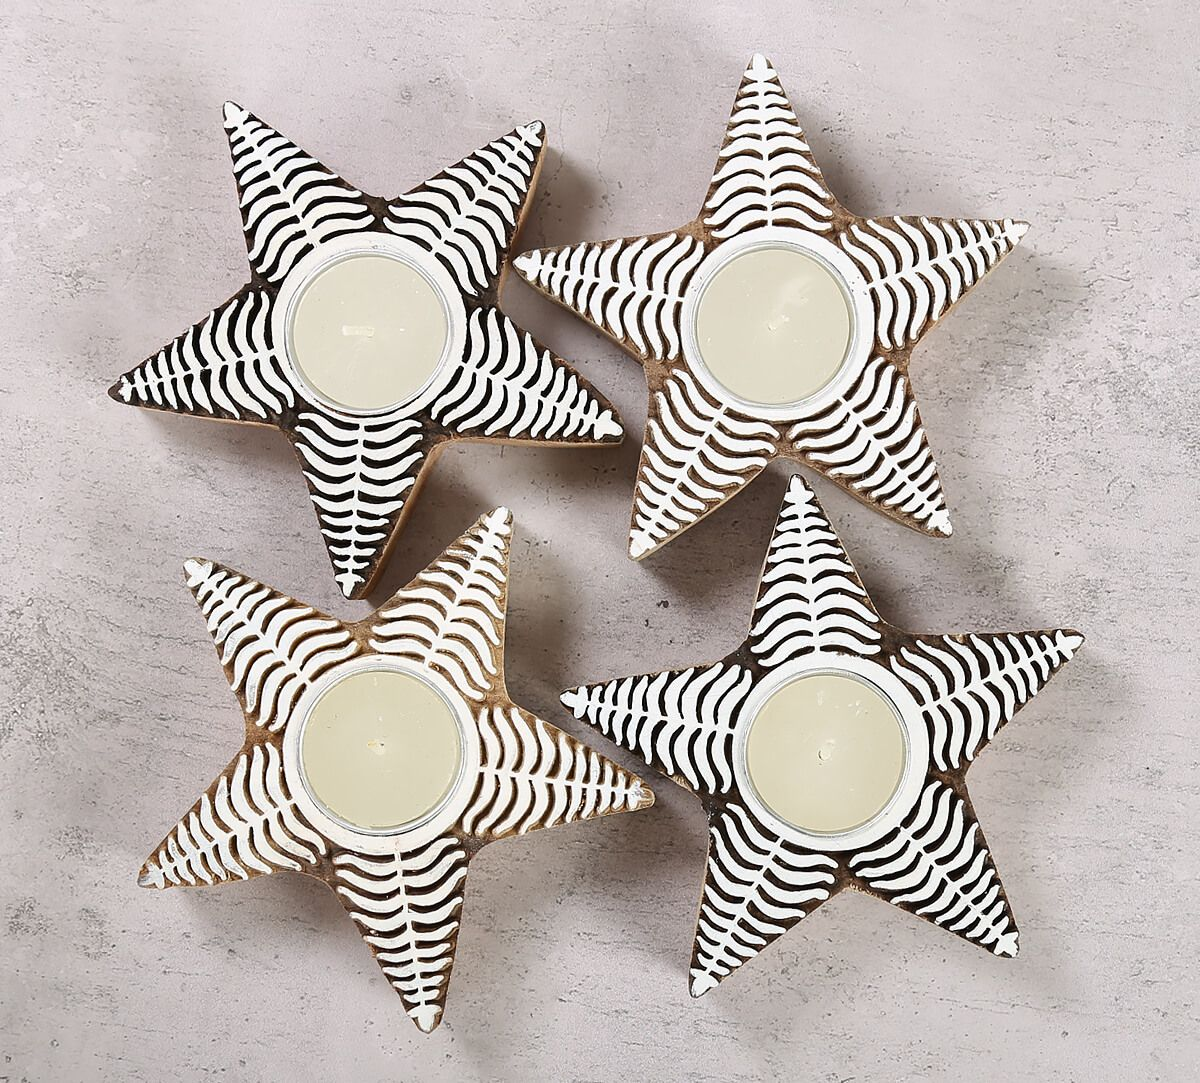 India Circus Star Shaped Wooden Engraved Tea Light Holder Set of 4